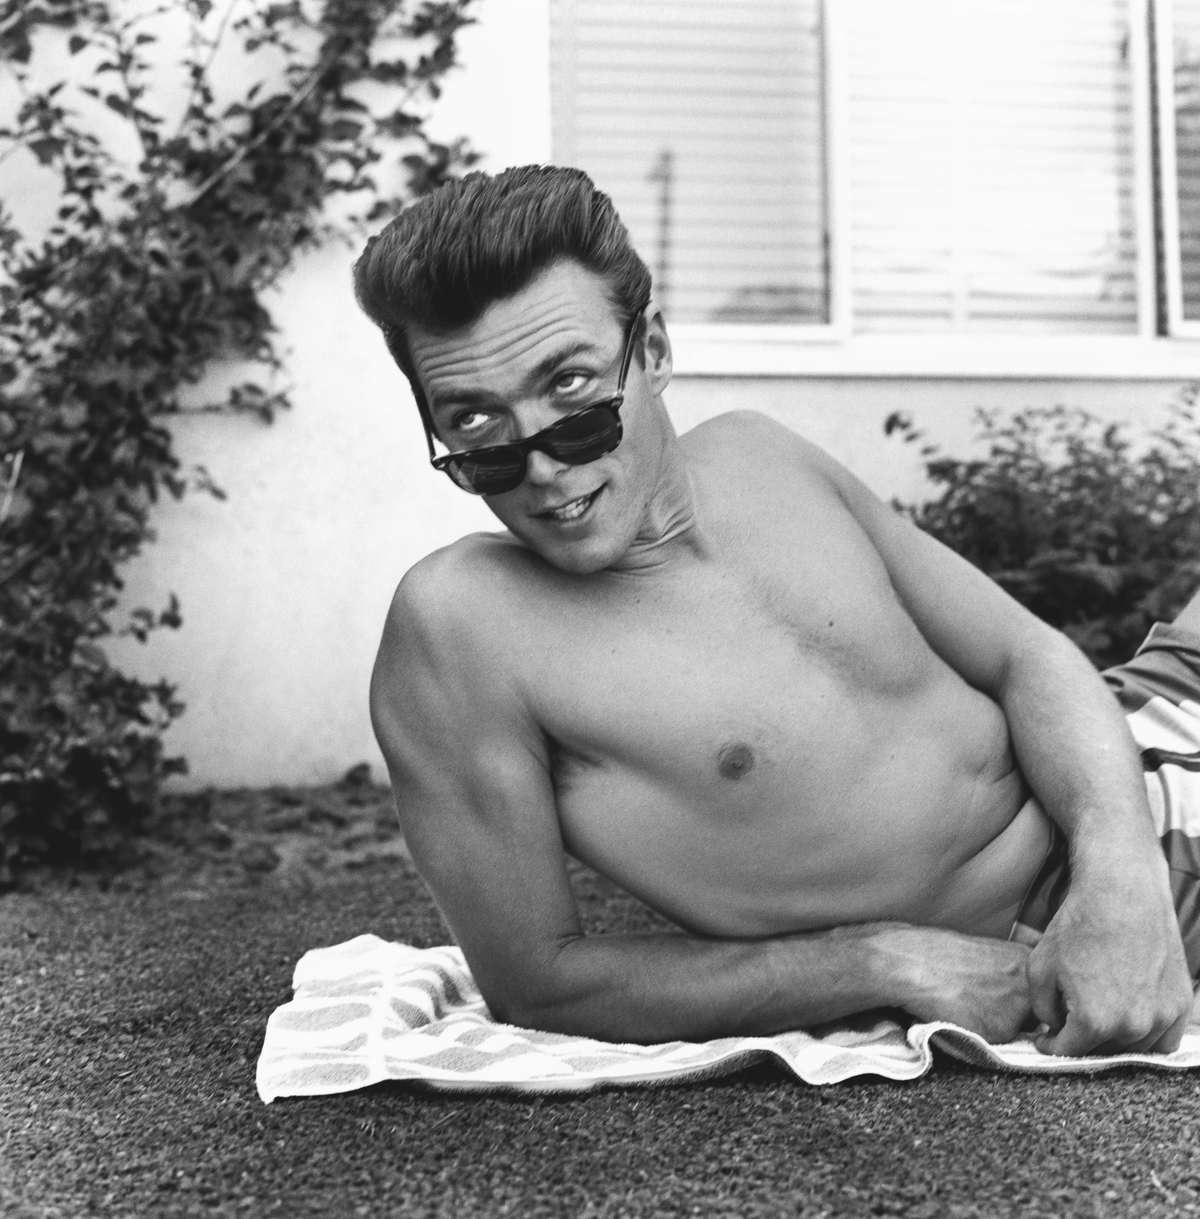 Actor Clint Eastwood lies on a towel and looks over his sunglasses at home on June 1, 1956 in Los Angeles, California.